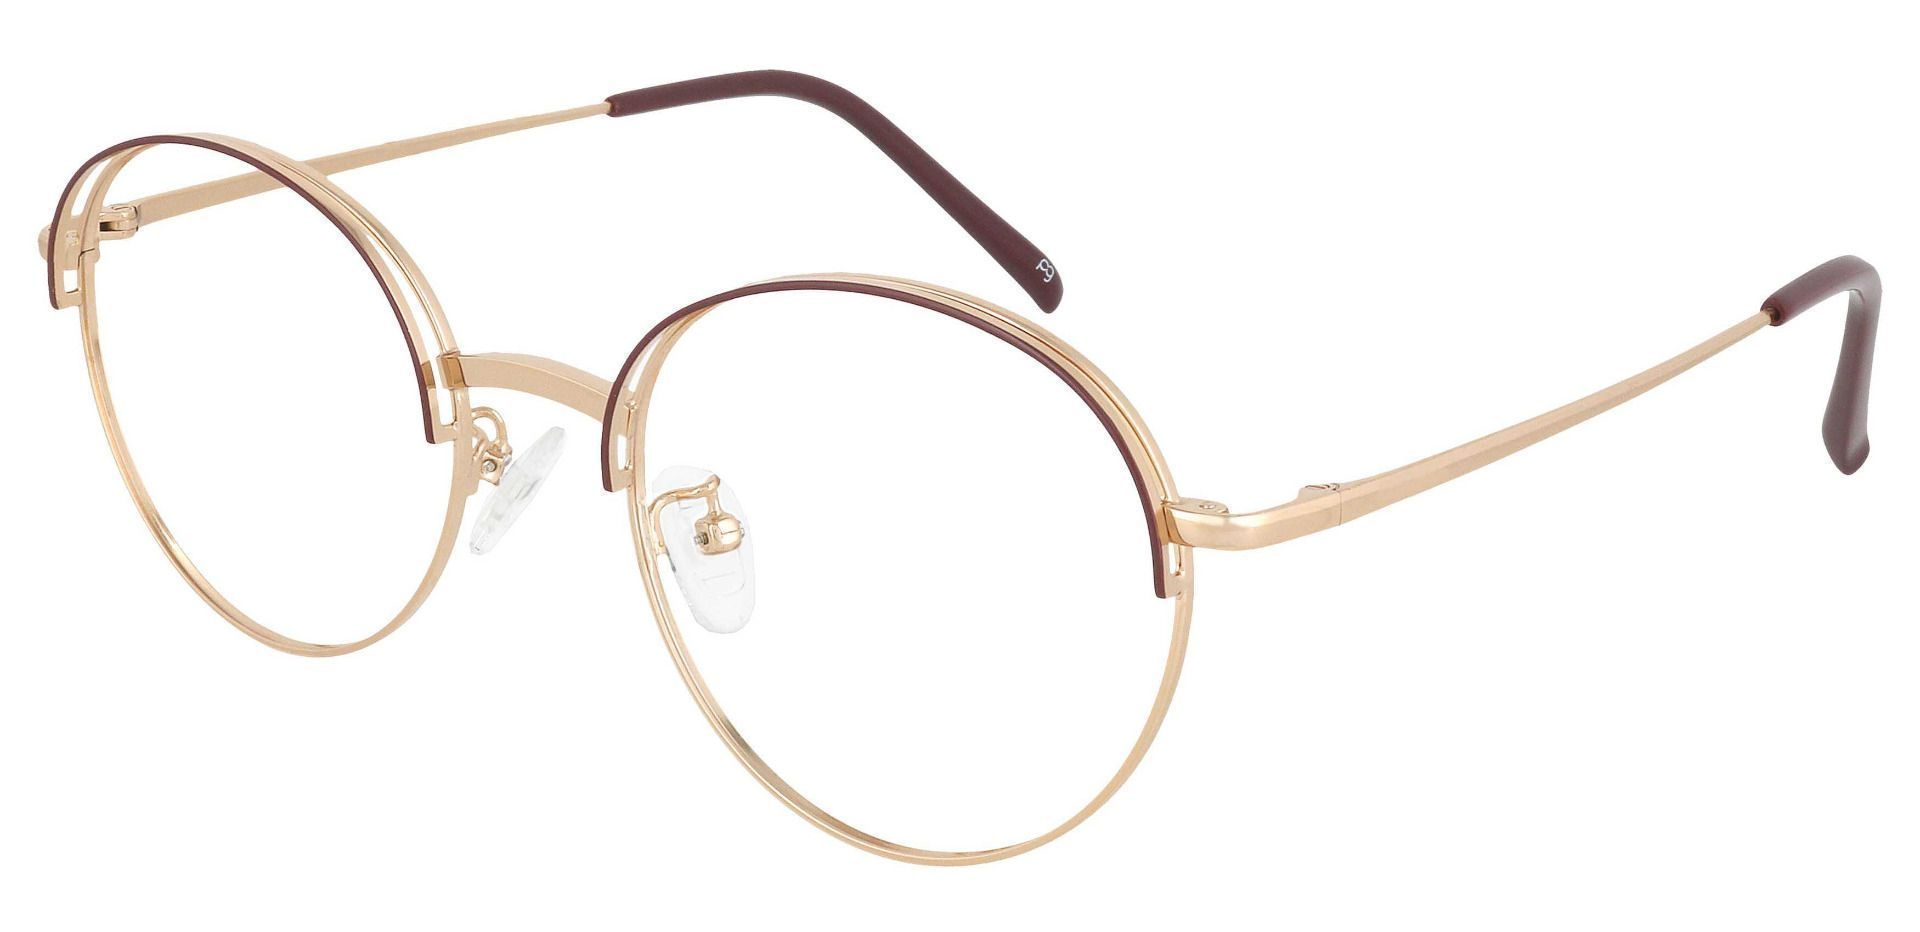 Olenna Round Prescription Glasses - White